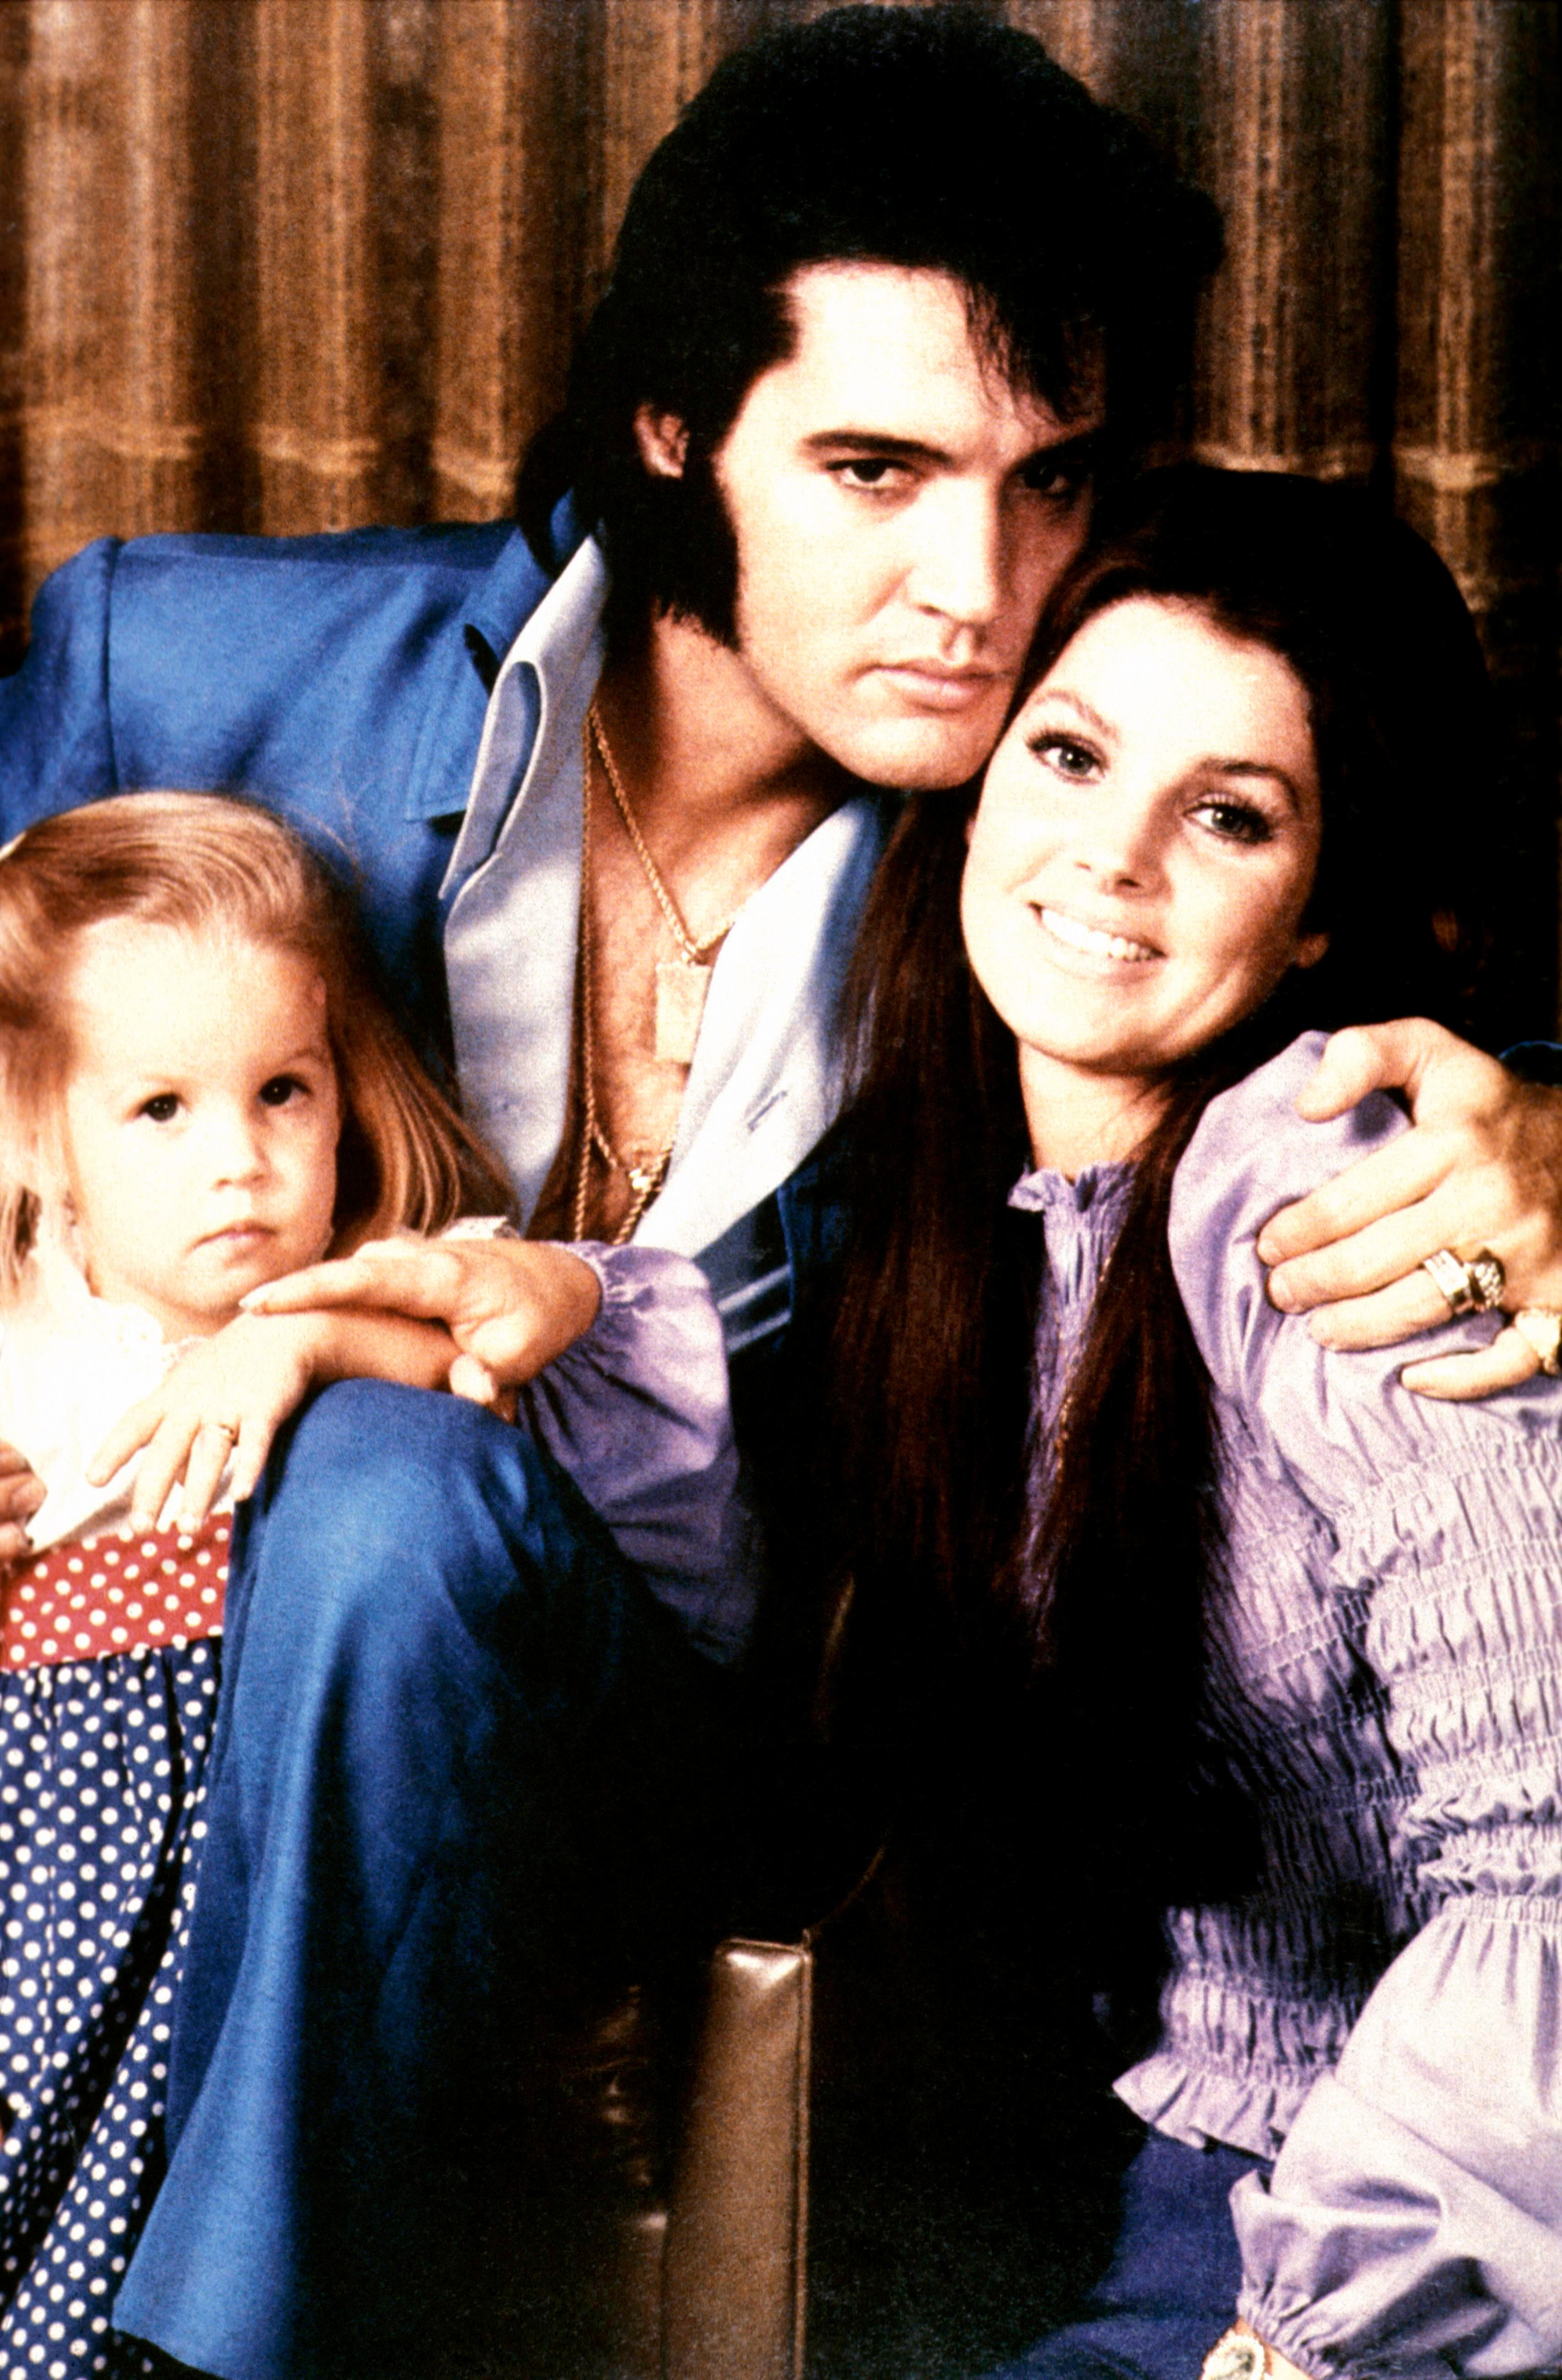 Lisa Marie is the only child of Elvis and his actress wife Priscilla